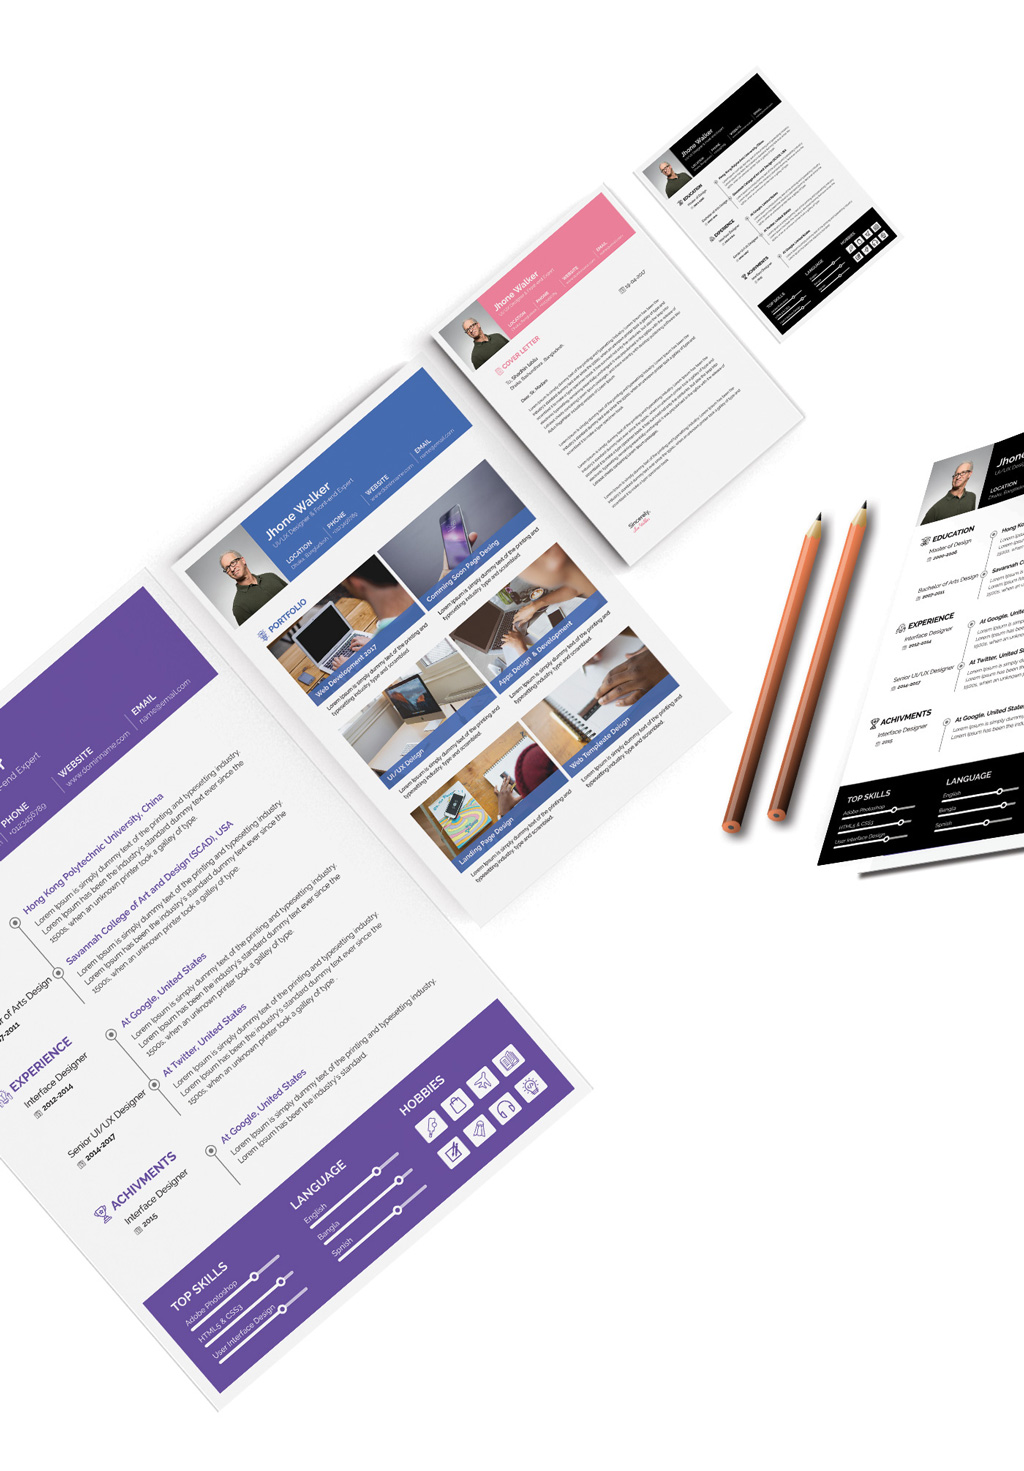 Free Simple Resume (CV) Design Template With Cover Letter Available in 4 Colors PSD Files (4)